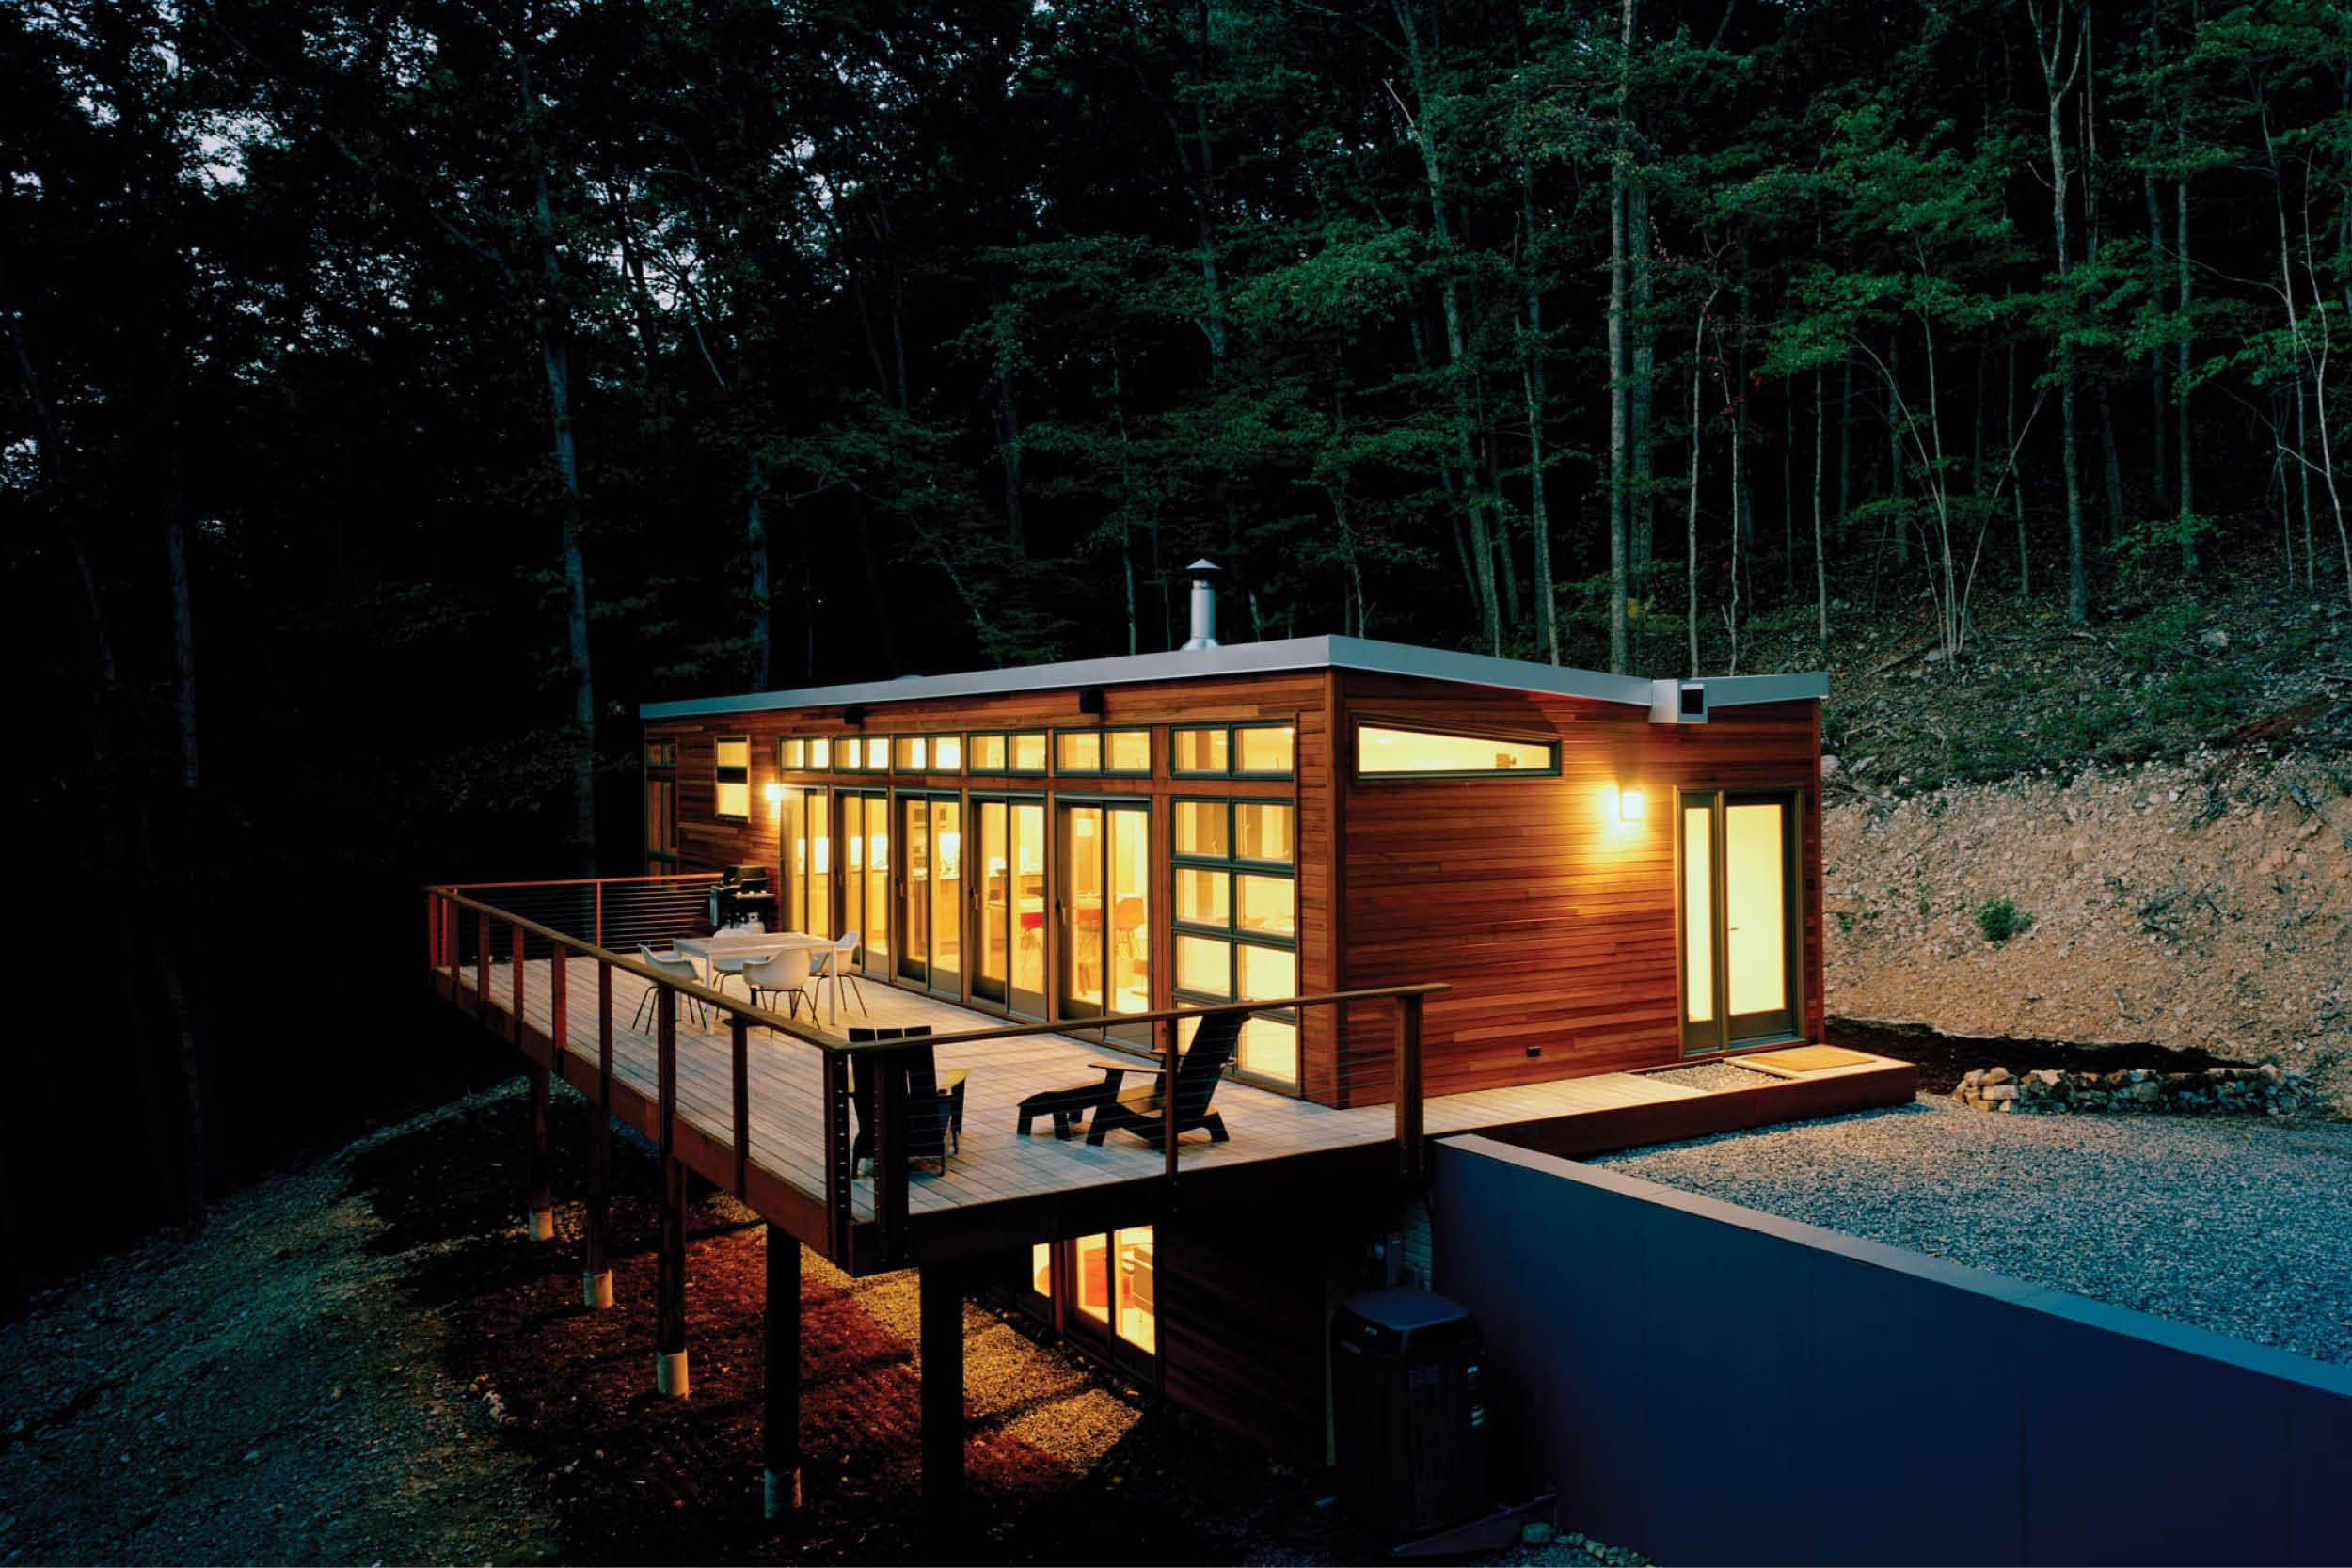 Modern modular prefab house steep site butterfly roof cedar siding deck cable rails res4 west virginia